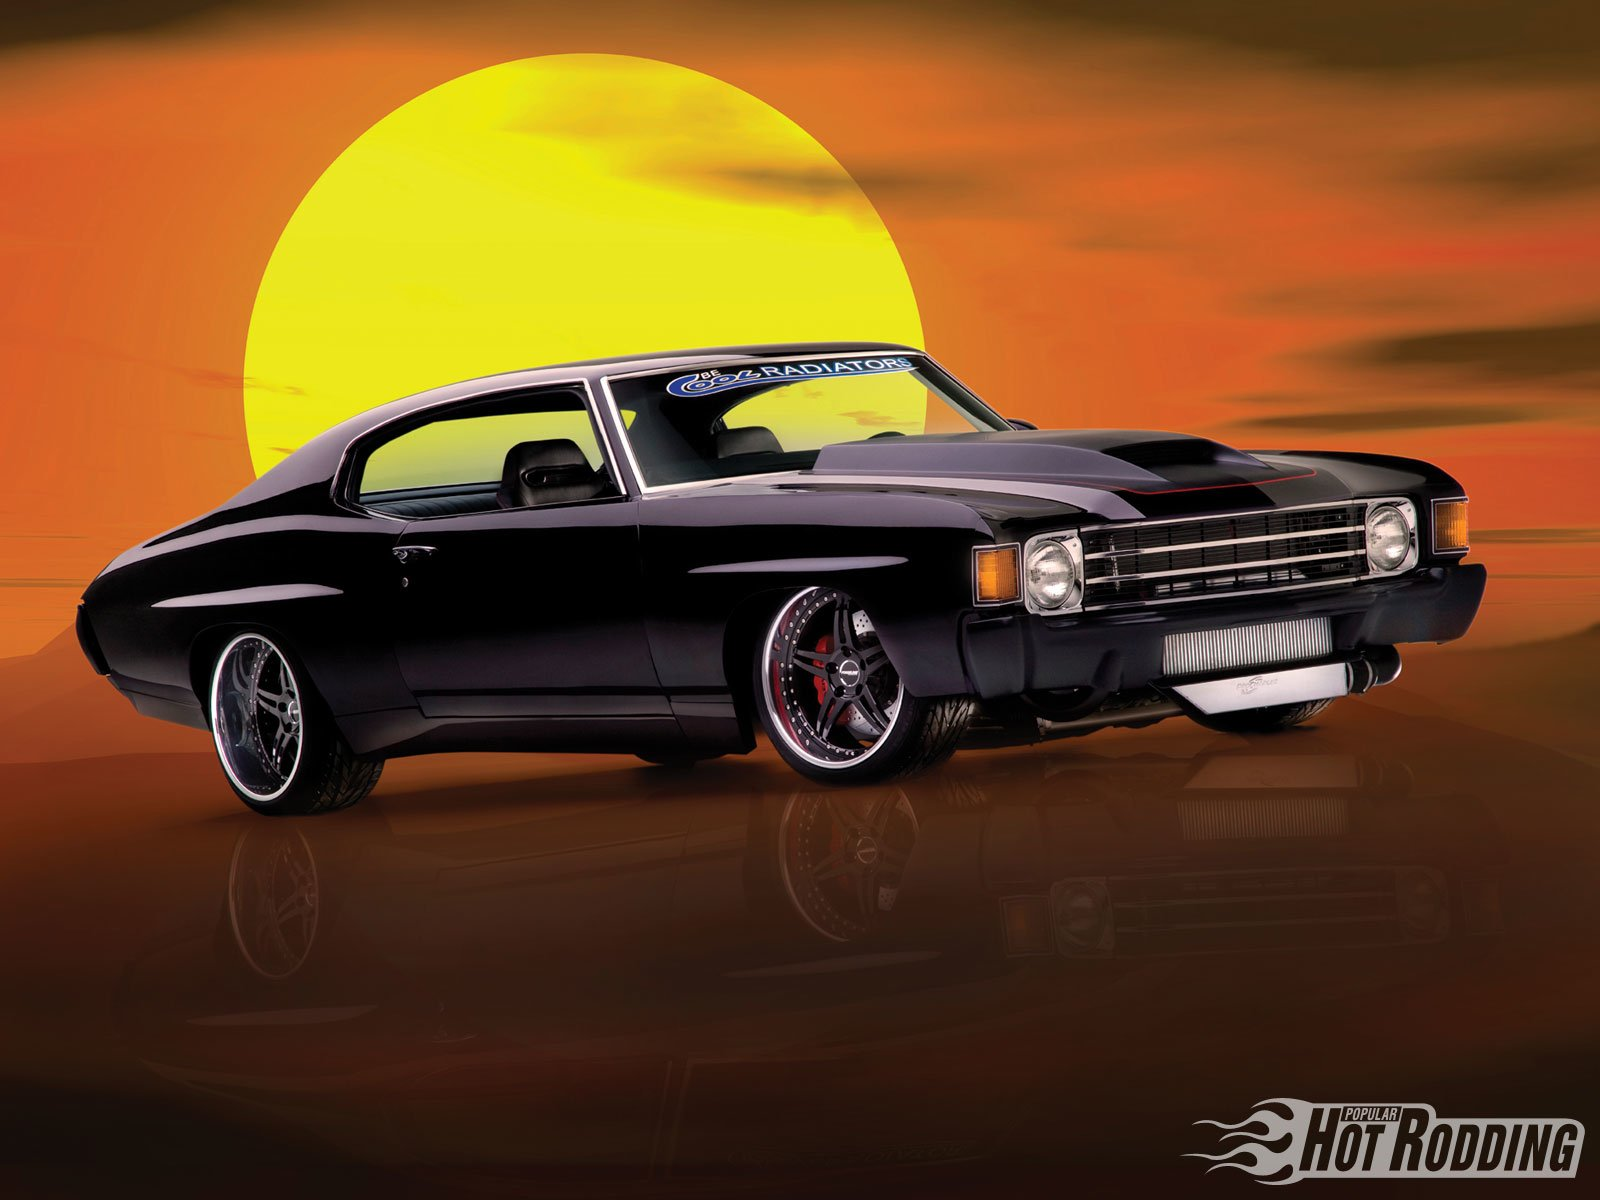 Chevy Muscle Car Wallpaper: 1972 Chevy Chevelle Wallpaper And Background Image